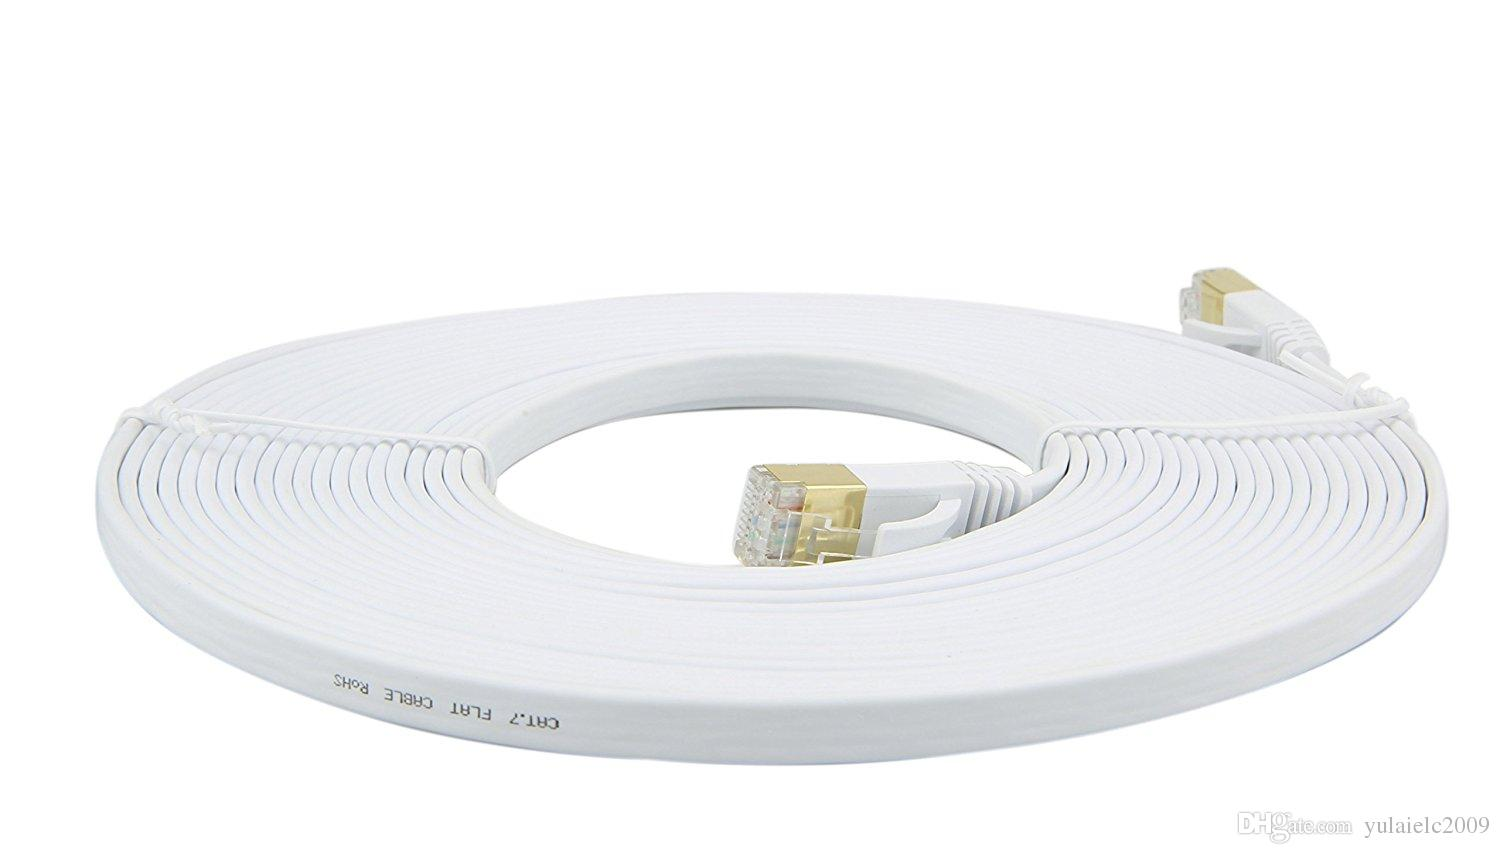 Ly-15m CAT7 High Speed Computer Router Gold Plated Plug STP Wires CAT7 RJ45 Ethernet LAN Networking Cable Professional Gold Headed Network